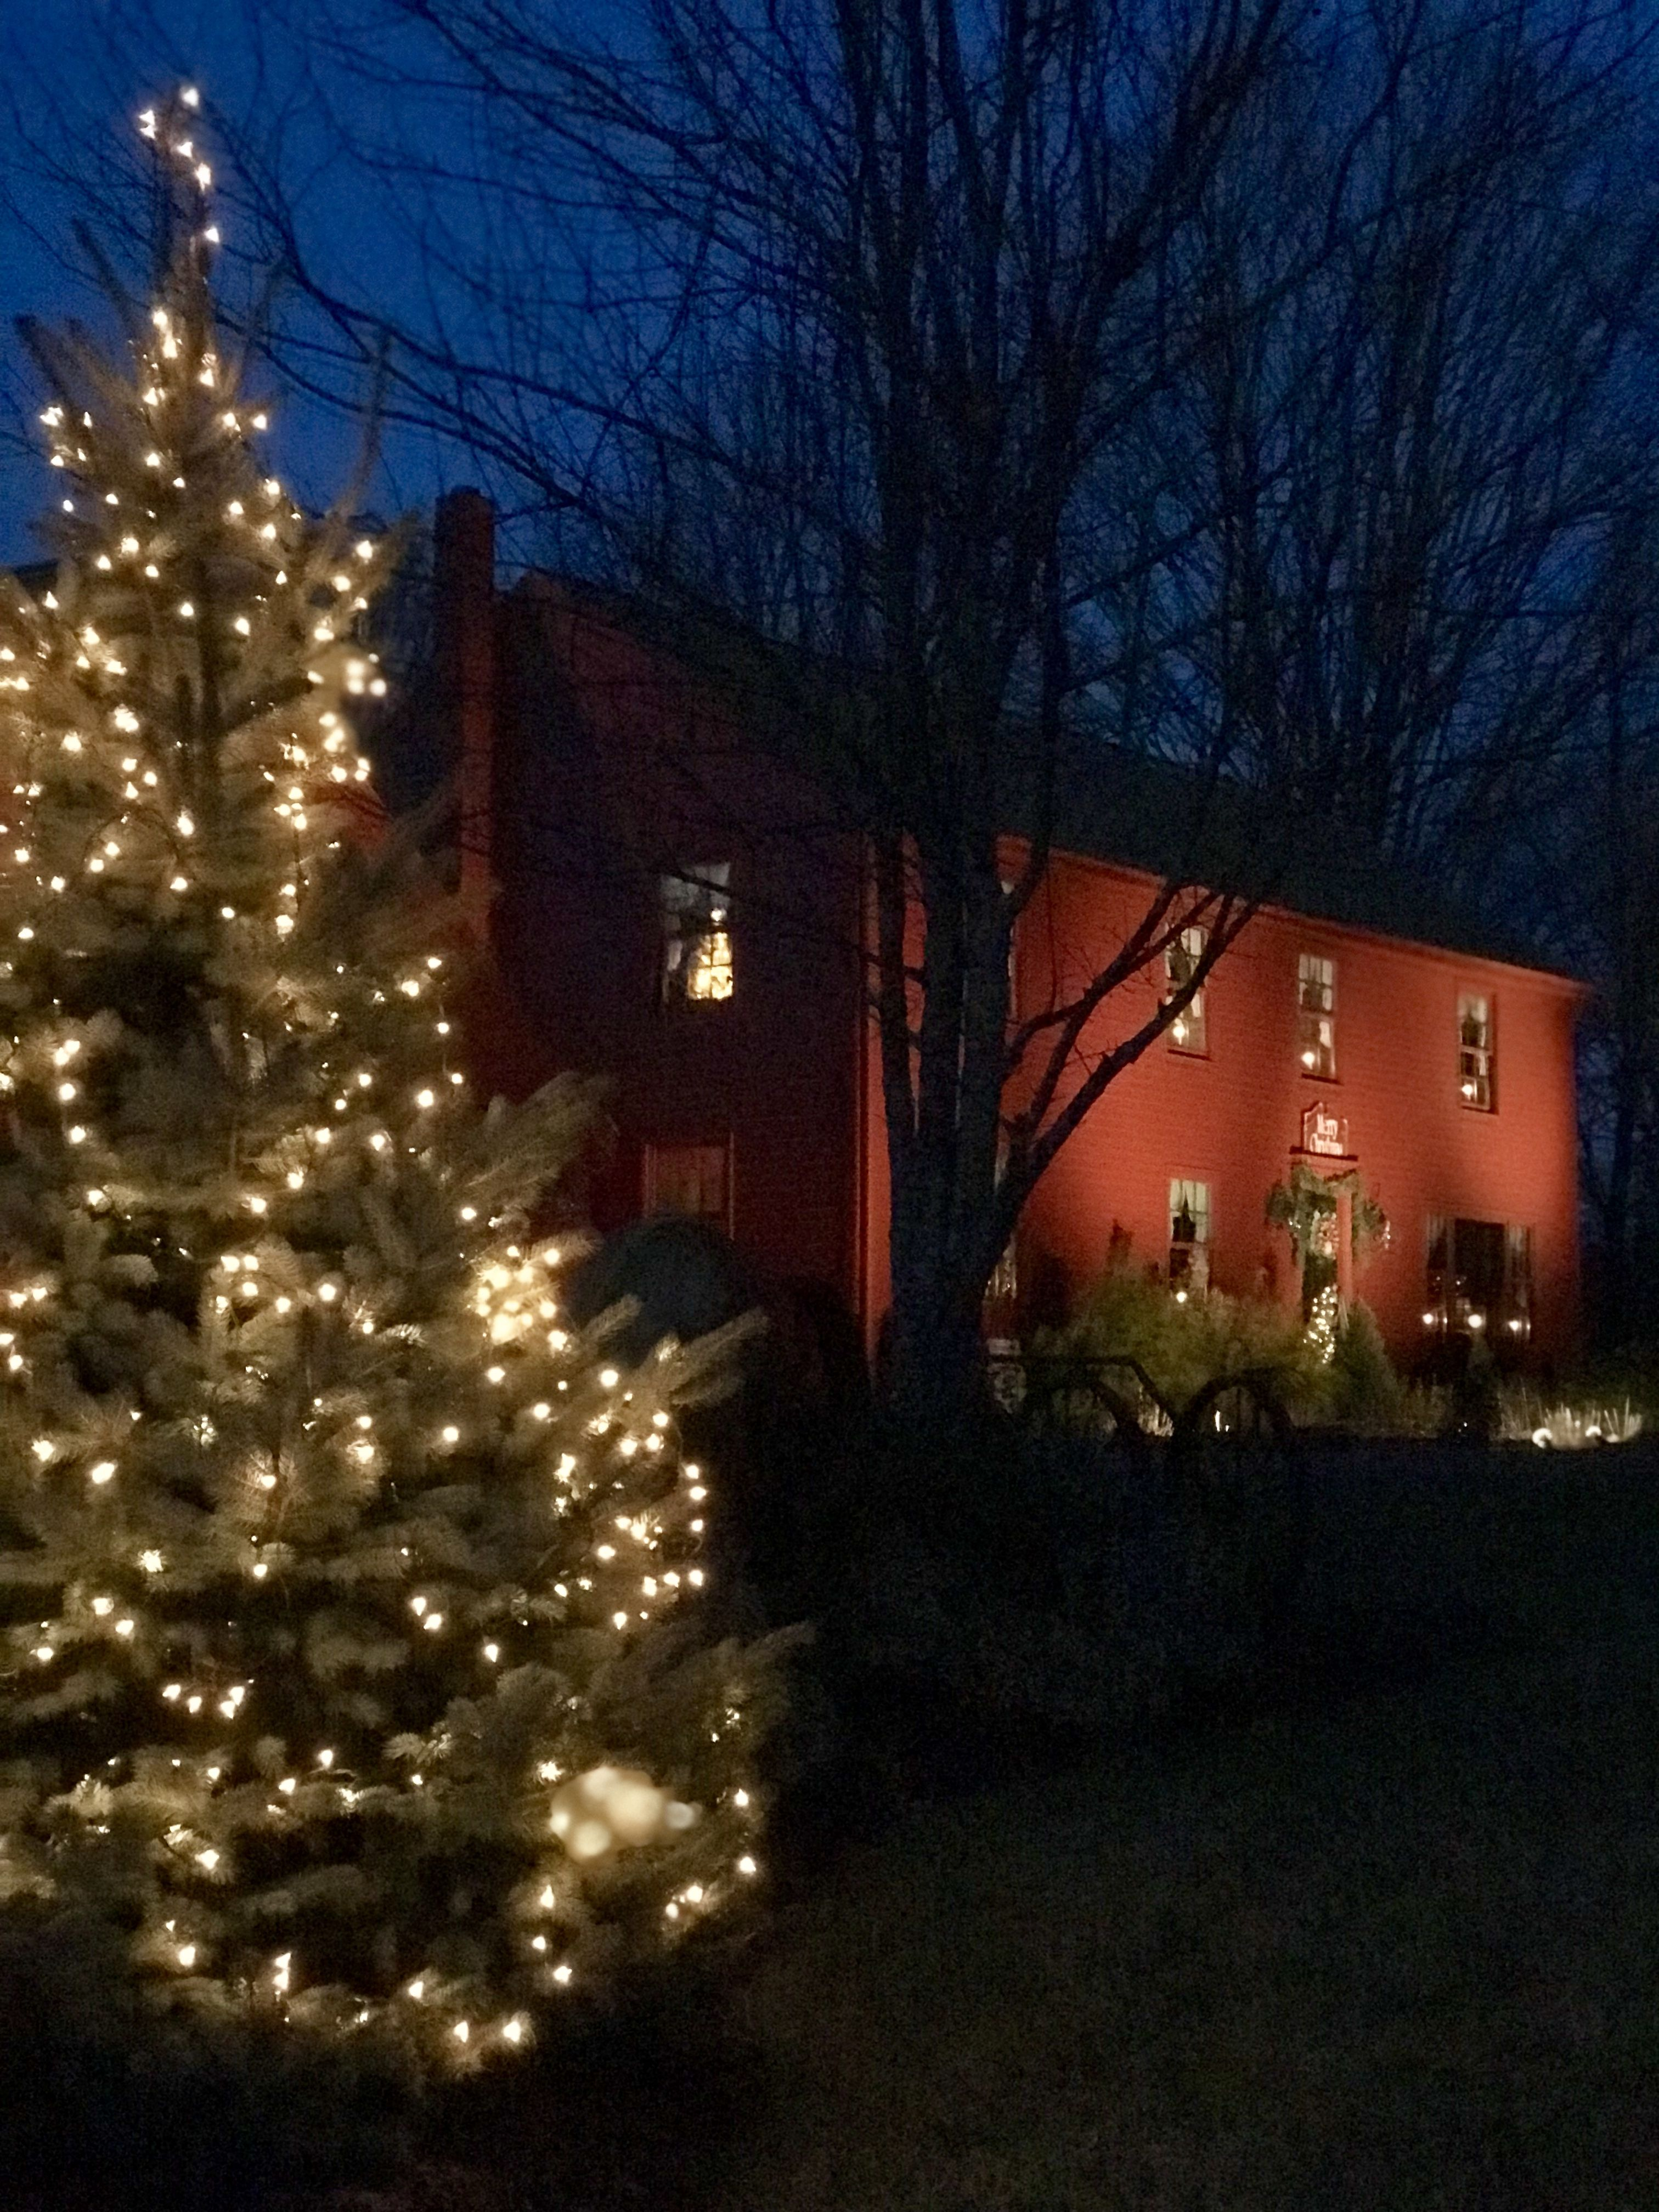 Williamsburg Christmas 2019.Pin By Gerico On New England Homes In 2019 Williamsburg